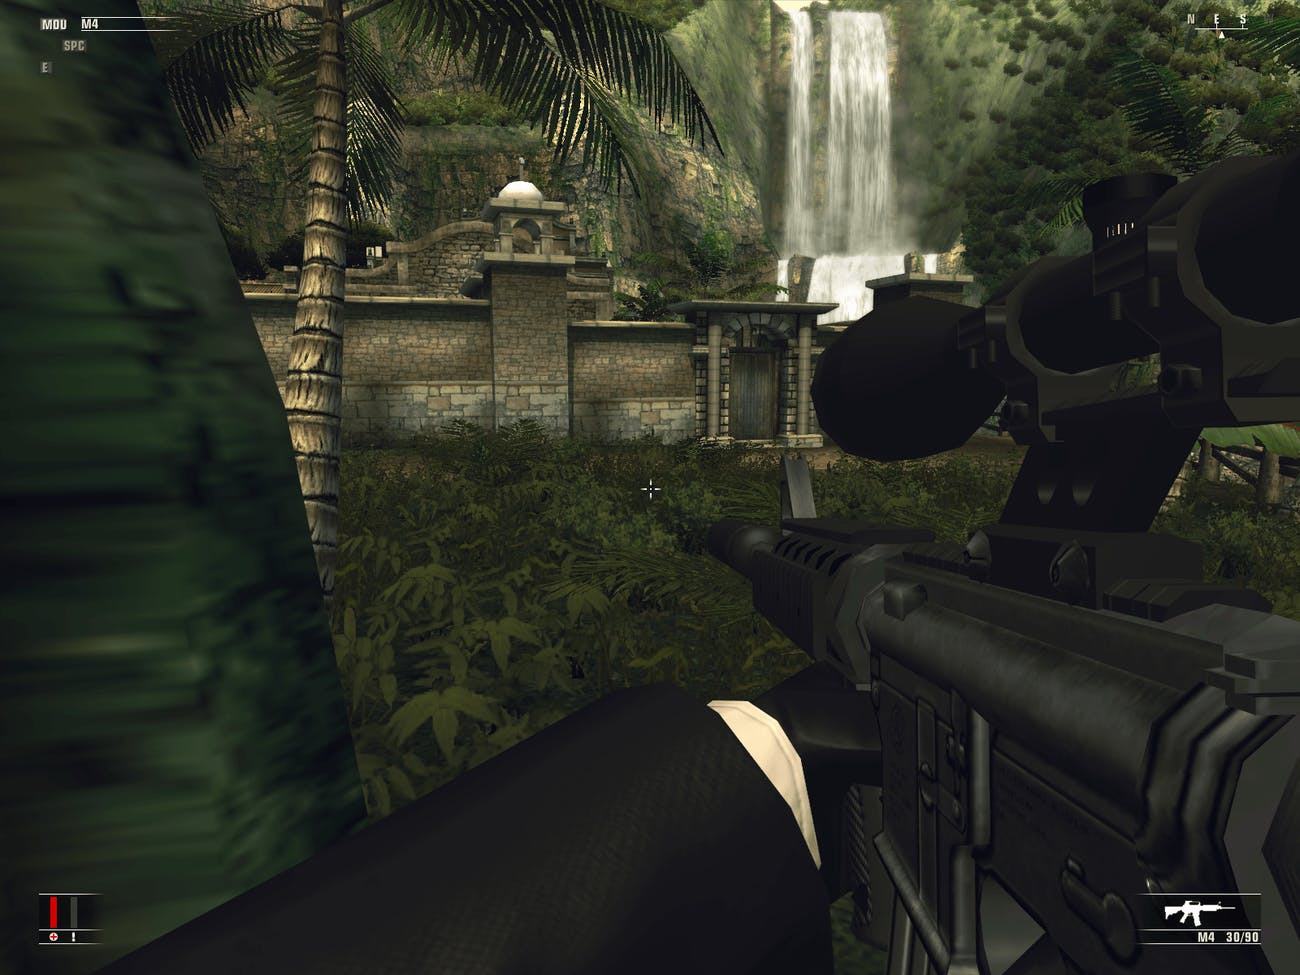 14 Games That Should Use VR Like 'Tomb Raider' | Inverse